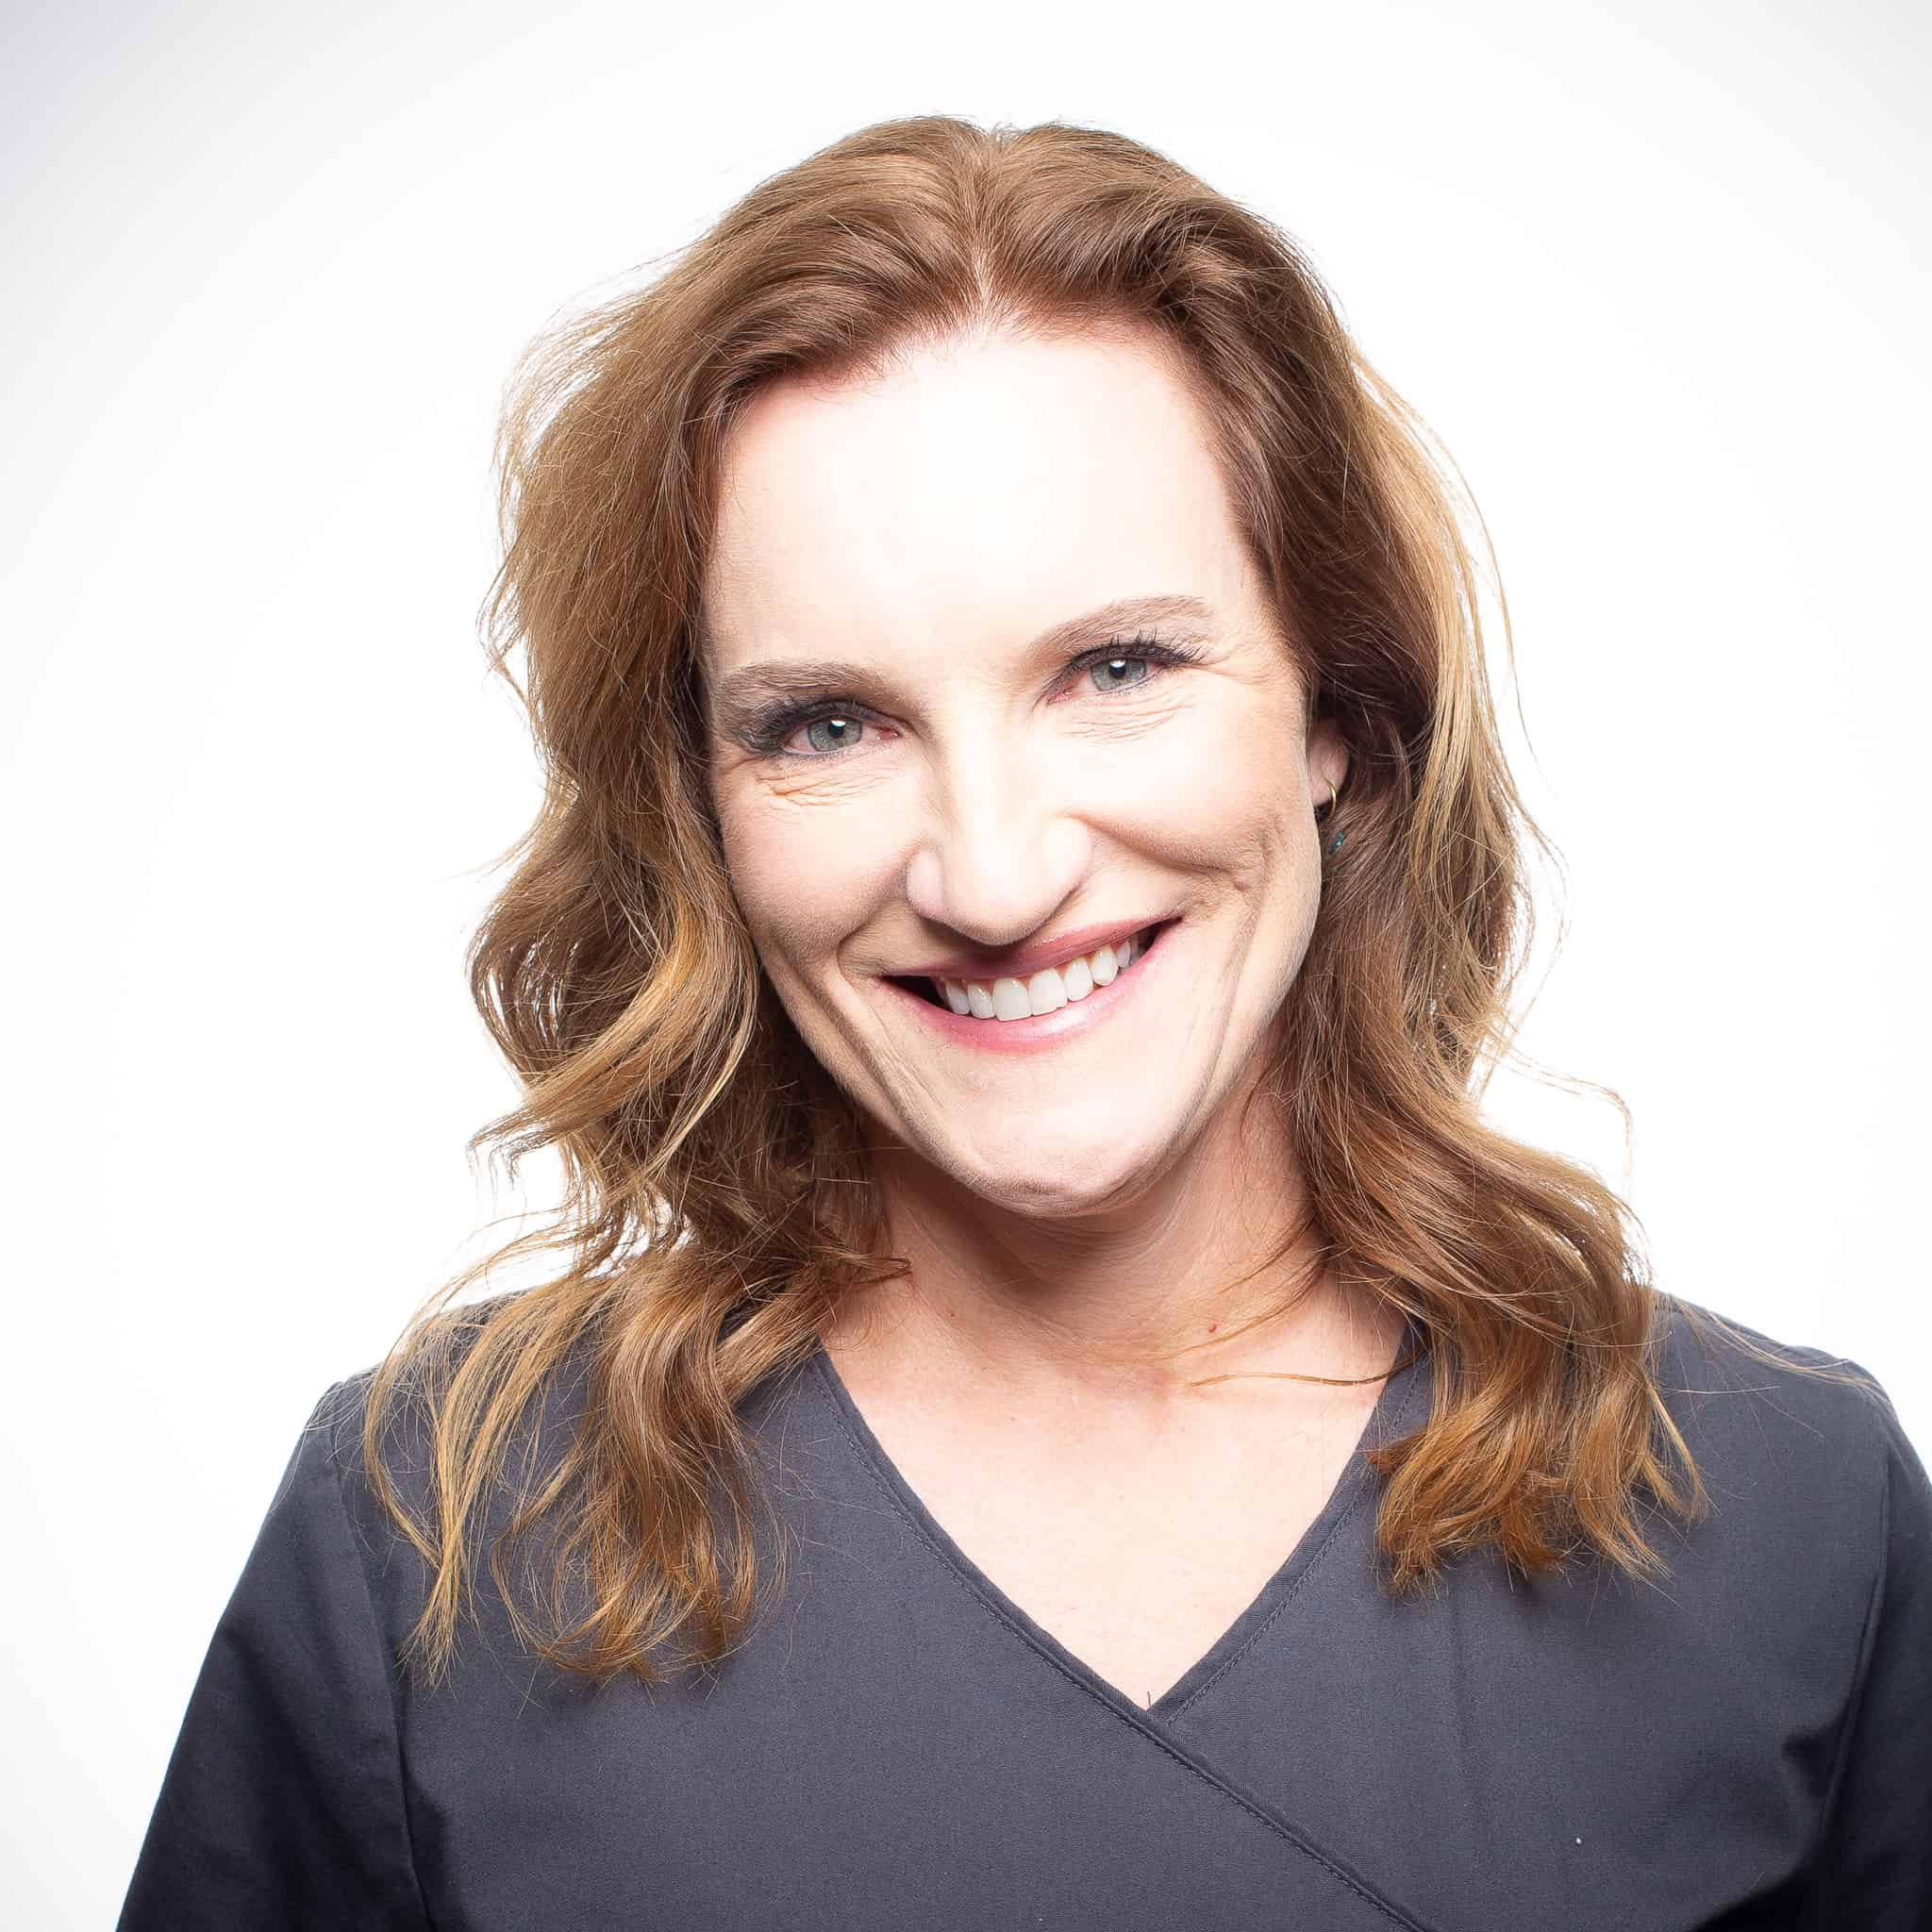 Magic Smiles El Dorado Hills Orthodontist Staff Portraits square 2019 8 - Meet Dr. Jen Datwyler